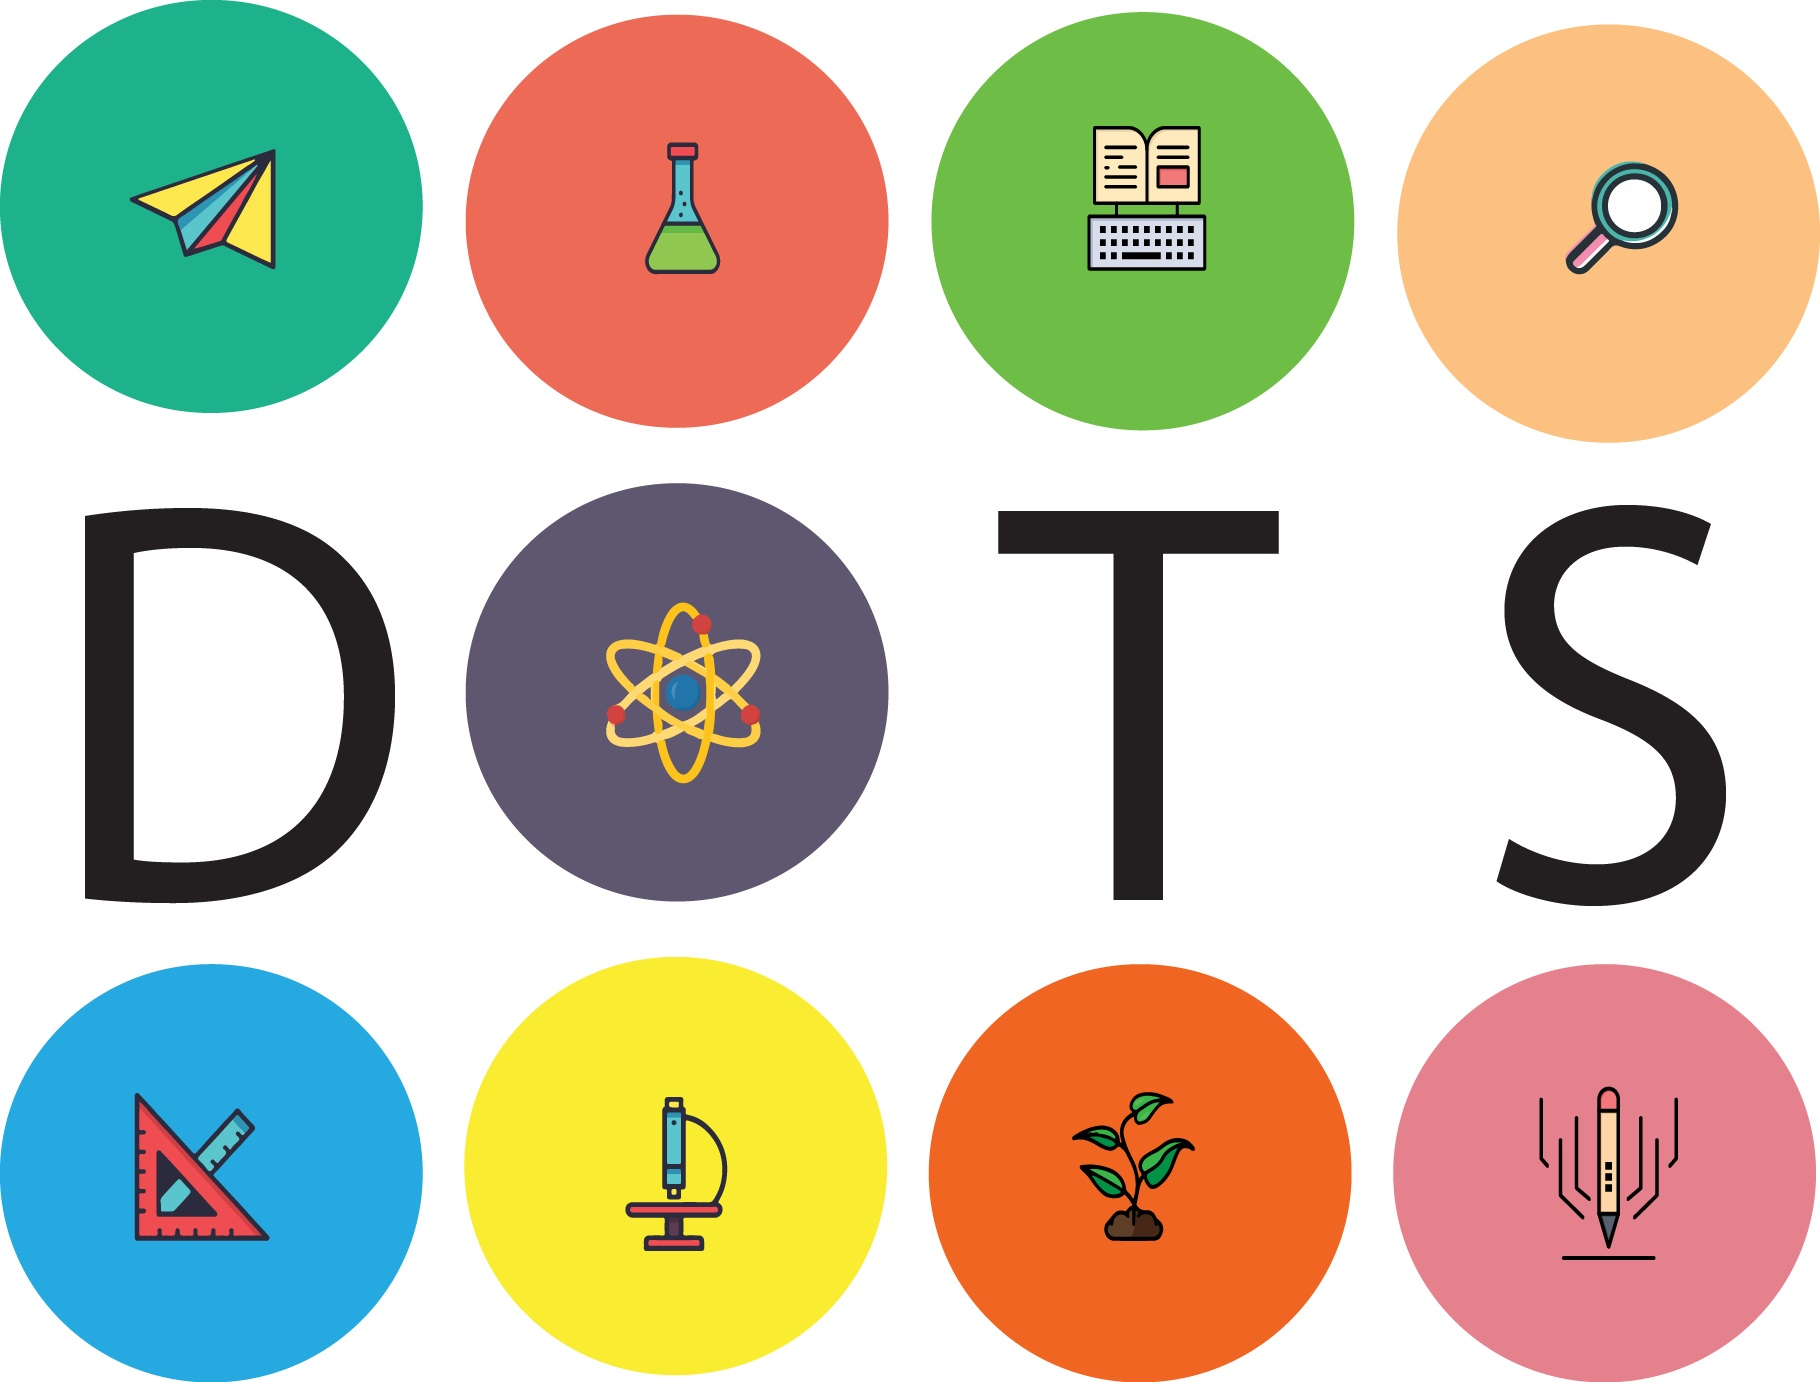 DOTS – Development of Transversal Skills